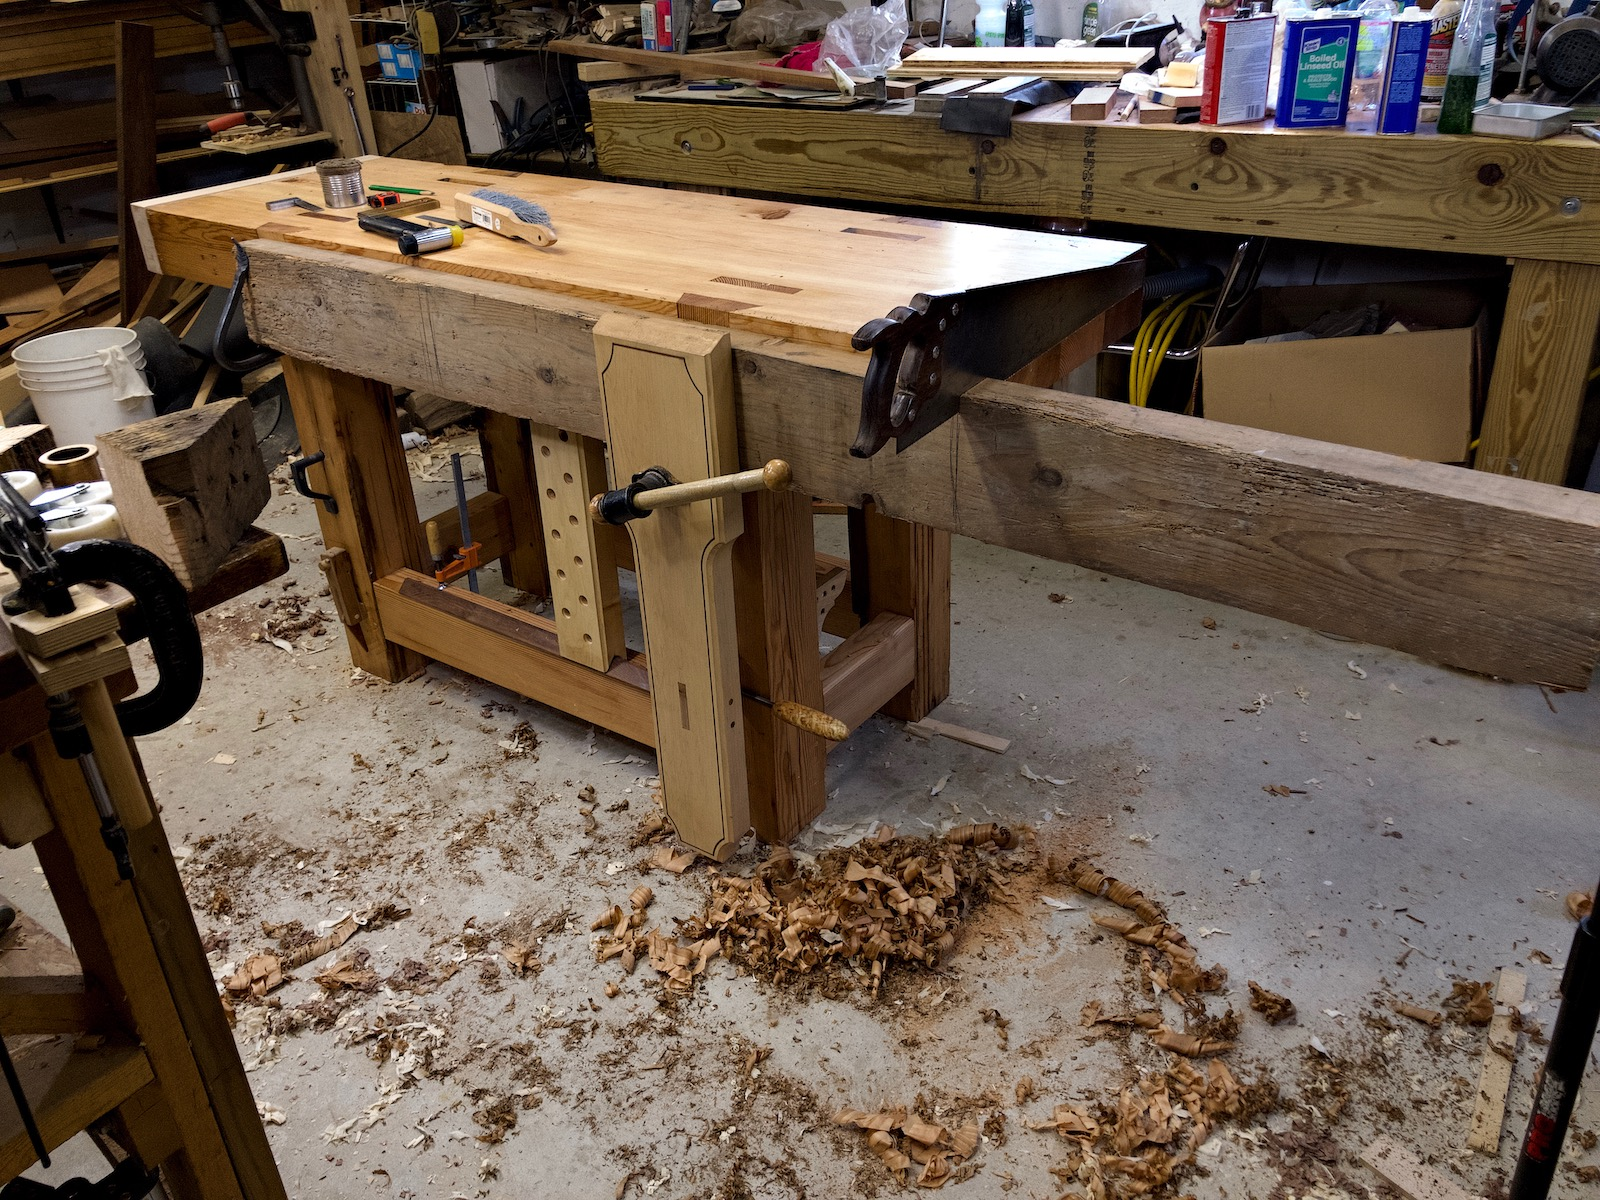 Workbench with wood in vise